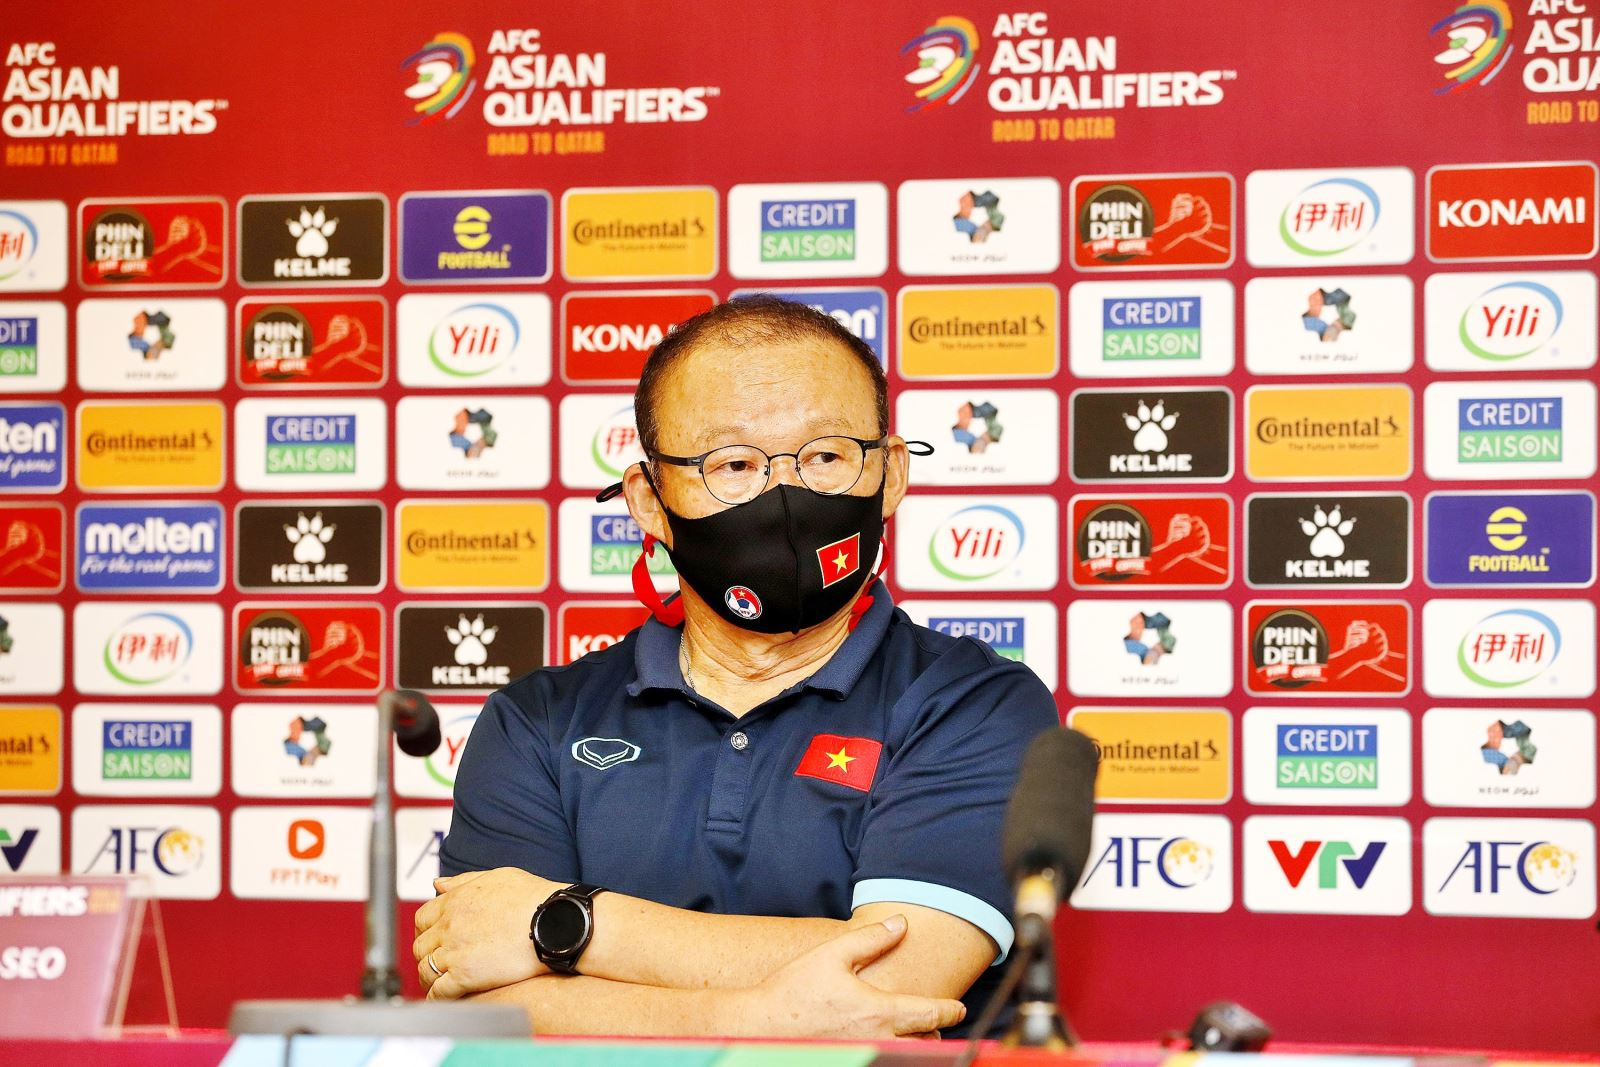 Mr. Park countered the accusations of risking injury to Vietnamese players 2